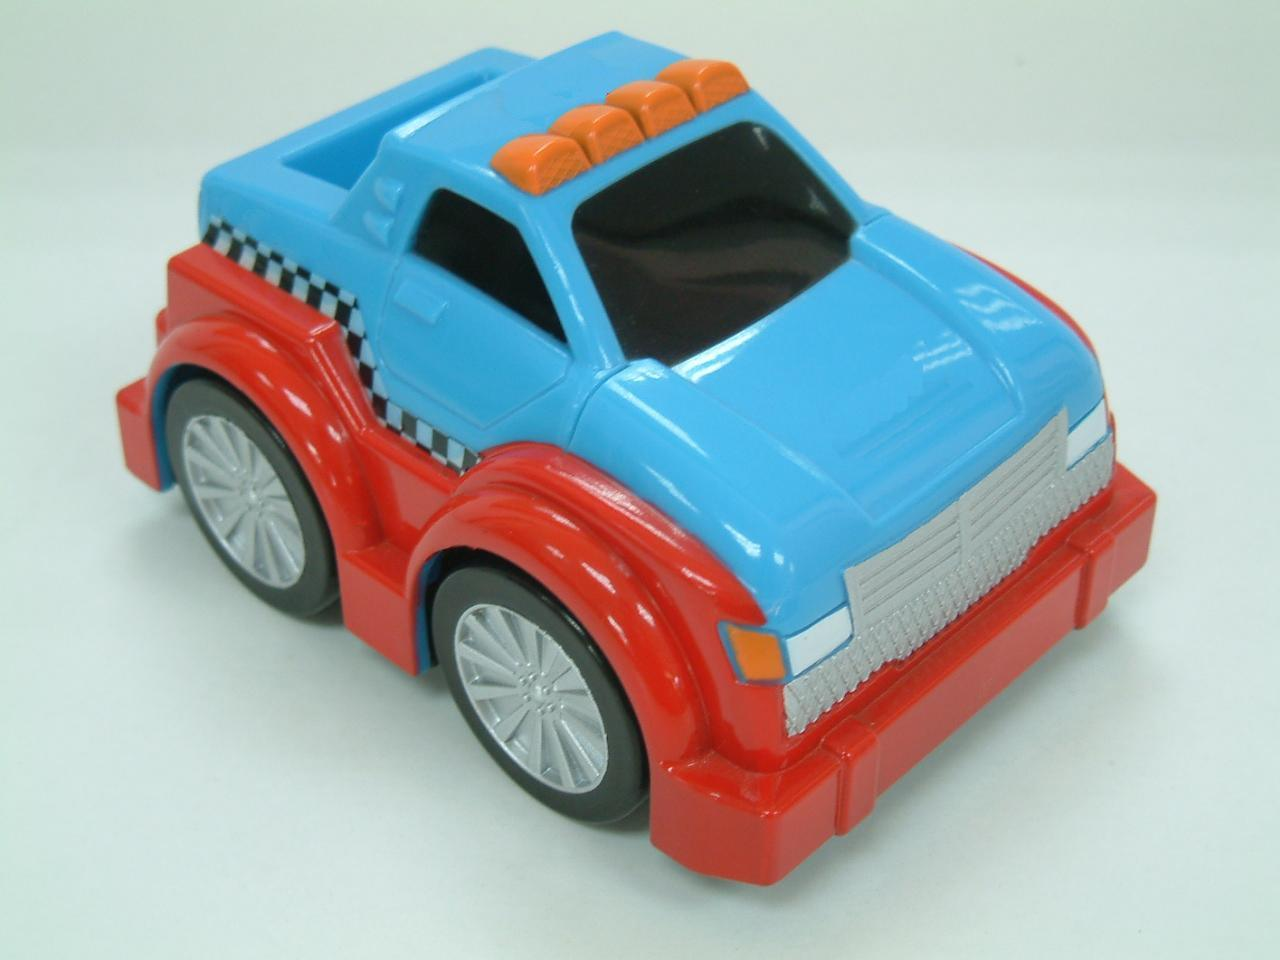 Plastic Toy Cars Bing Images